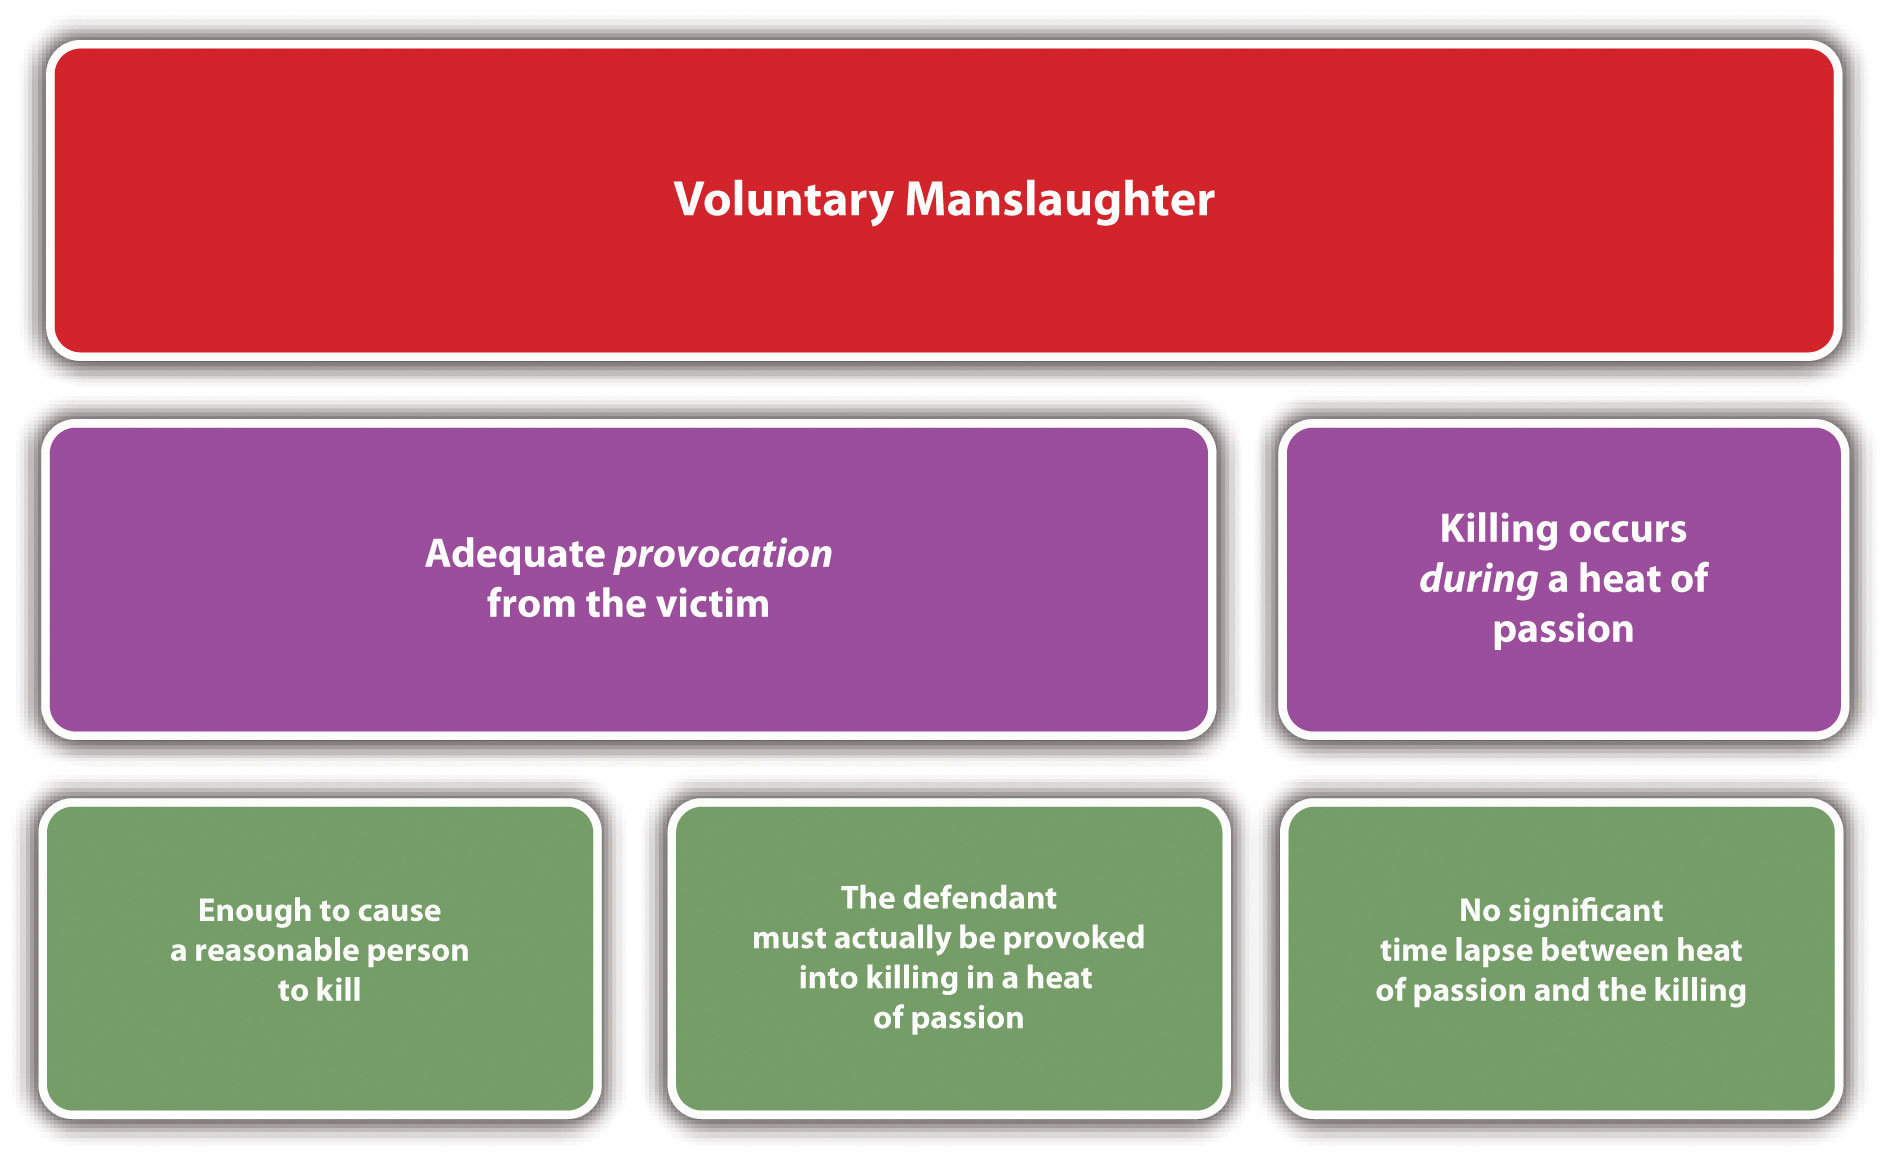 elements of involuntary manslaughter